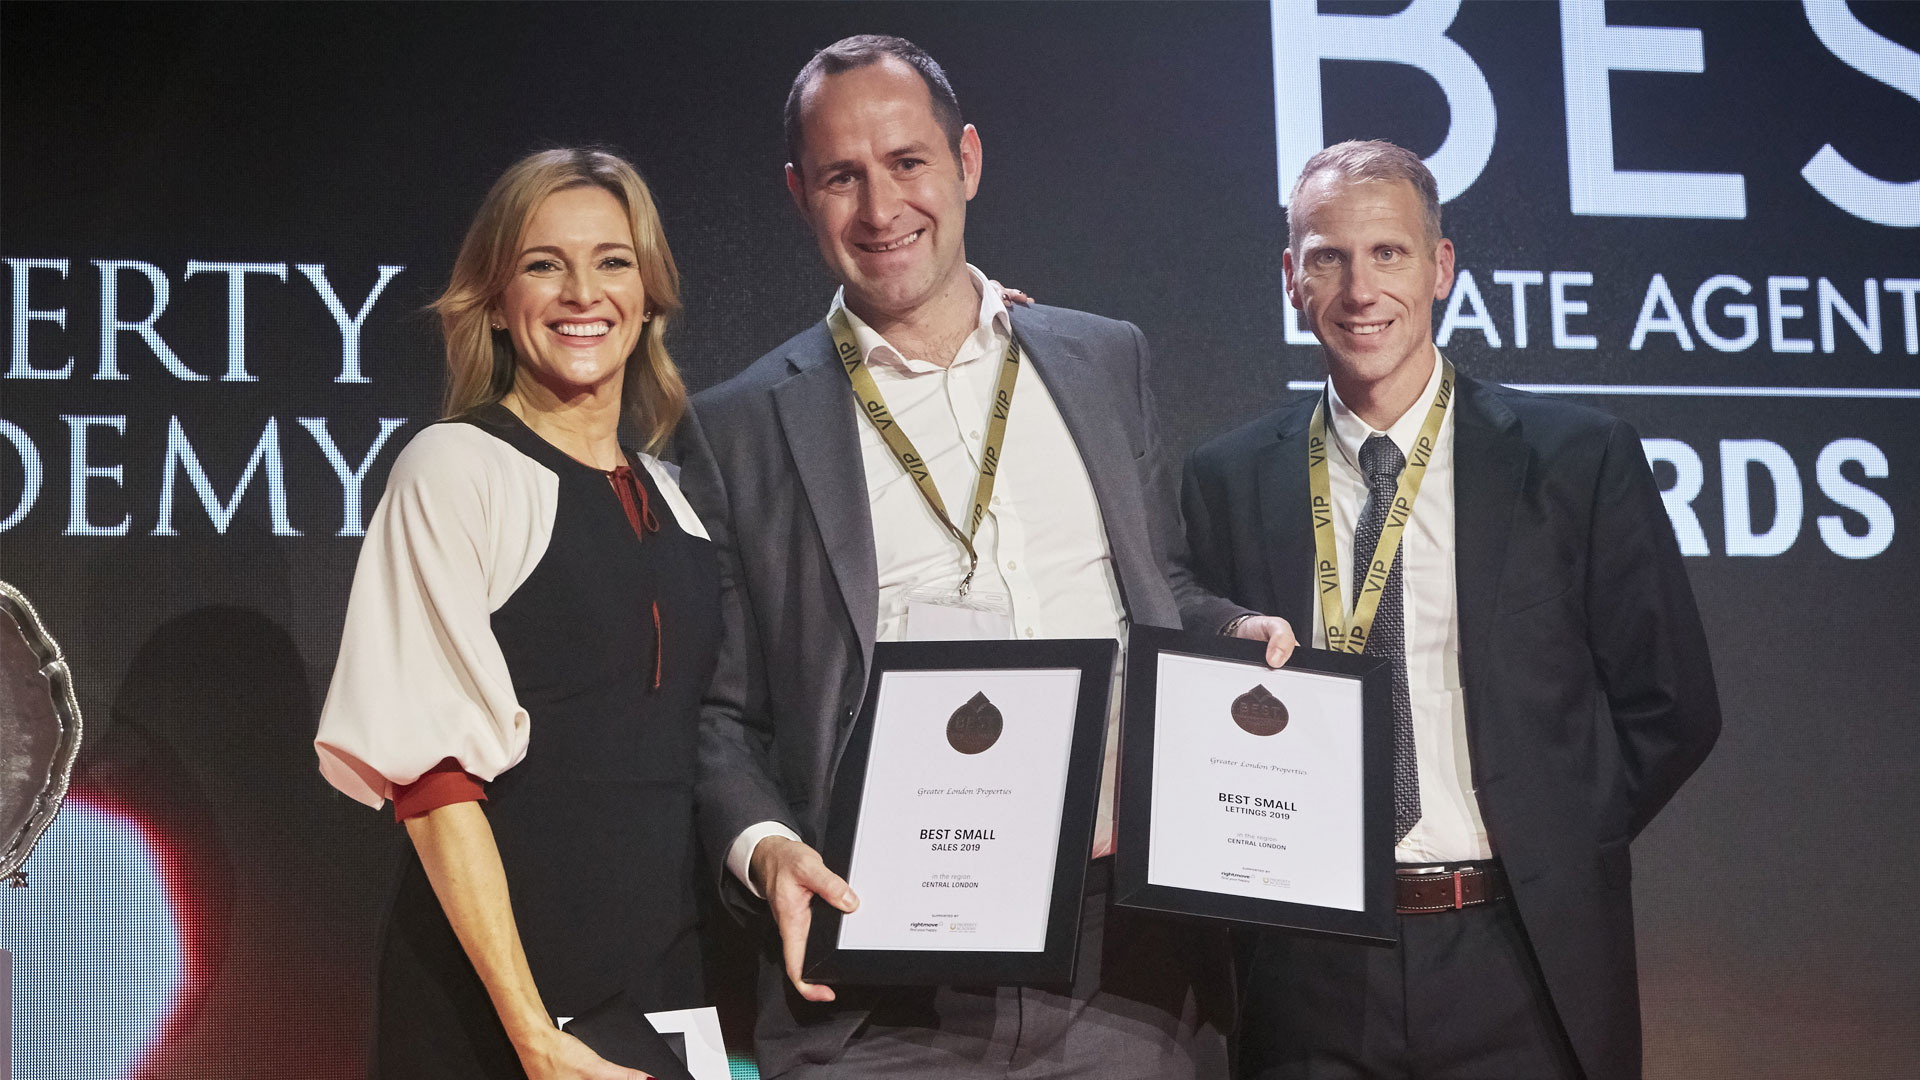 Best estate agent london 2019 award with gabby logan